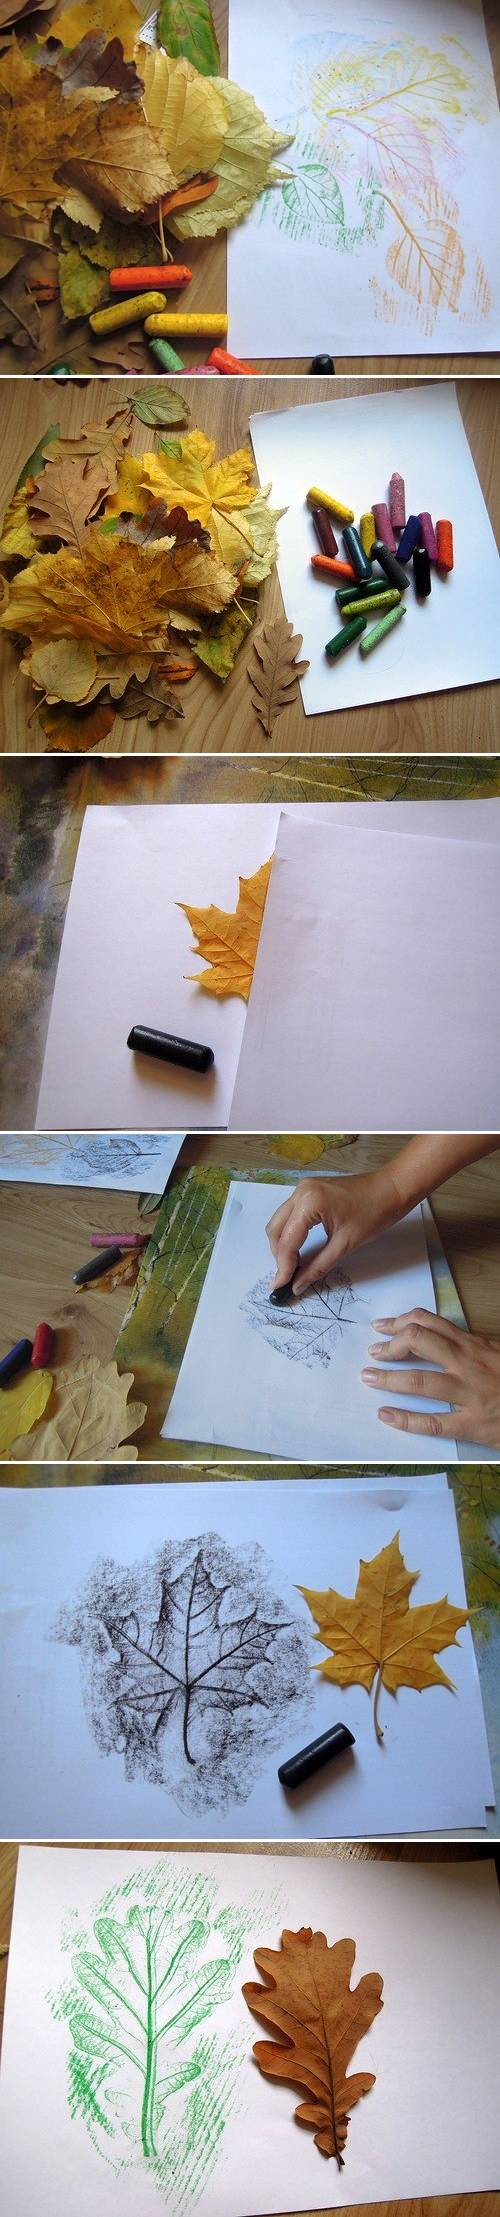 Quatang Gallery- Diy Draw Leaves Diy Projects Usefuldiy Com Fall Crafts Autumn Crafts Crafts